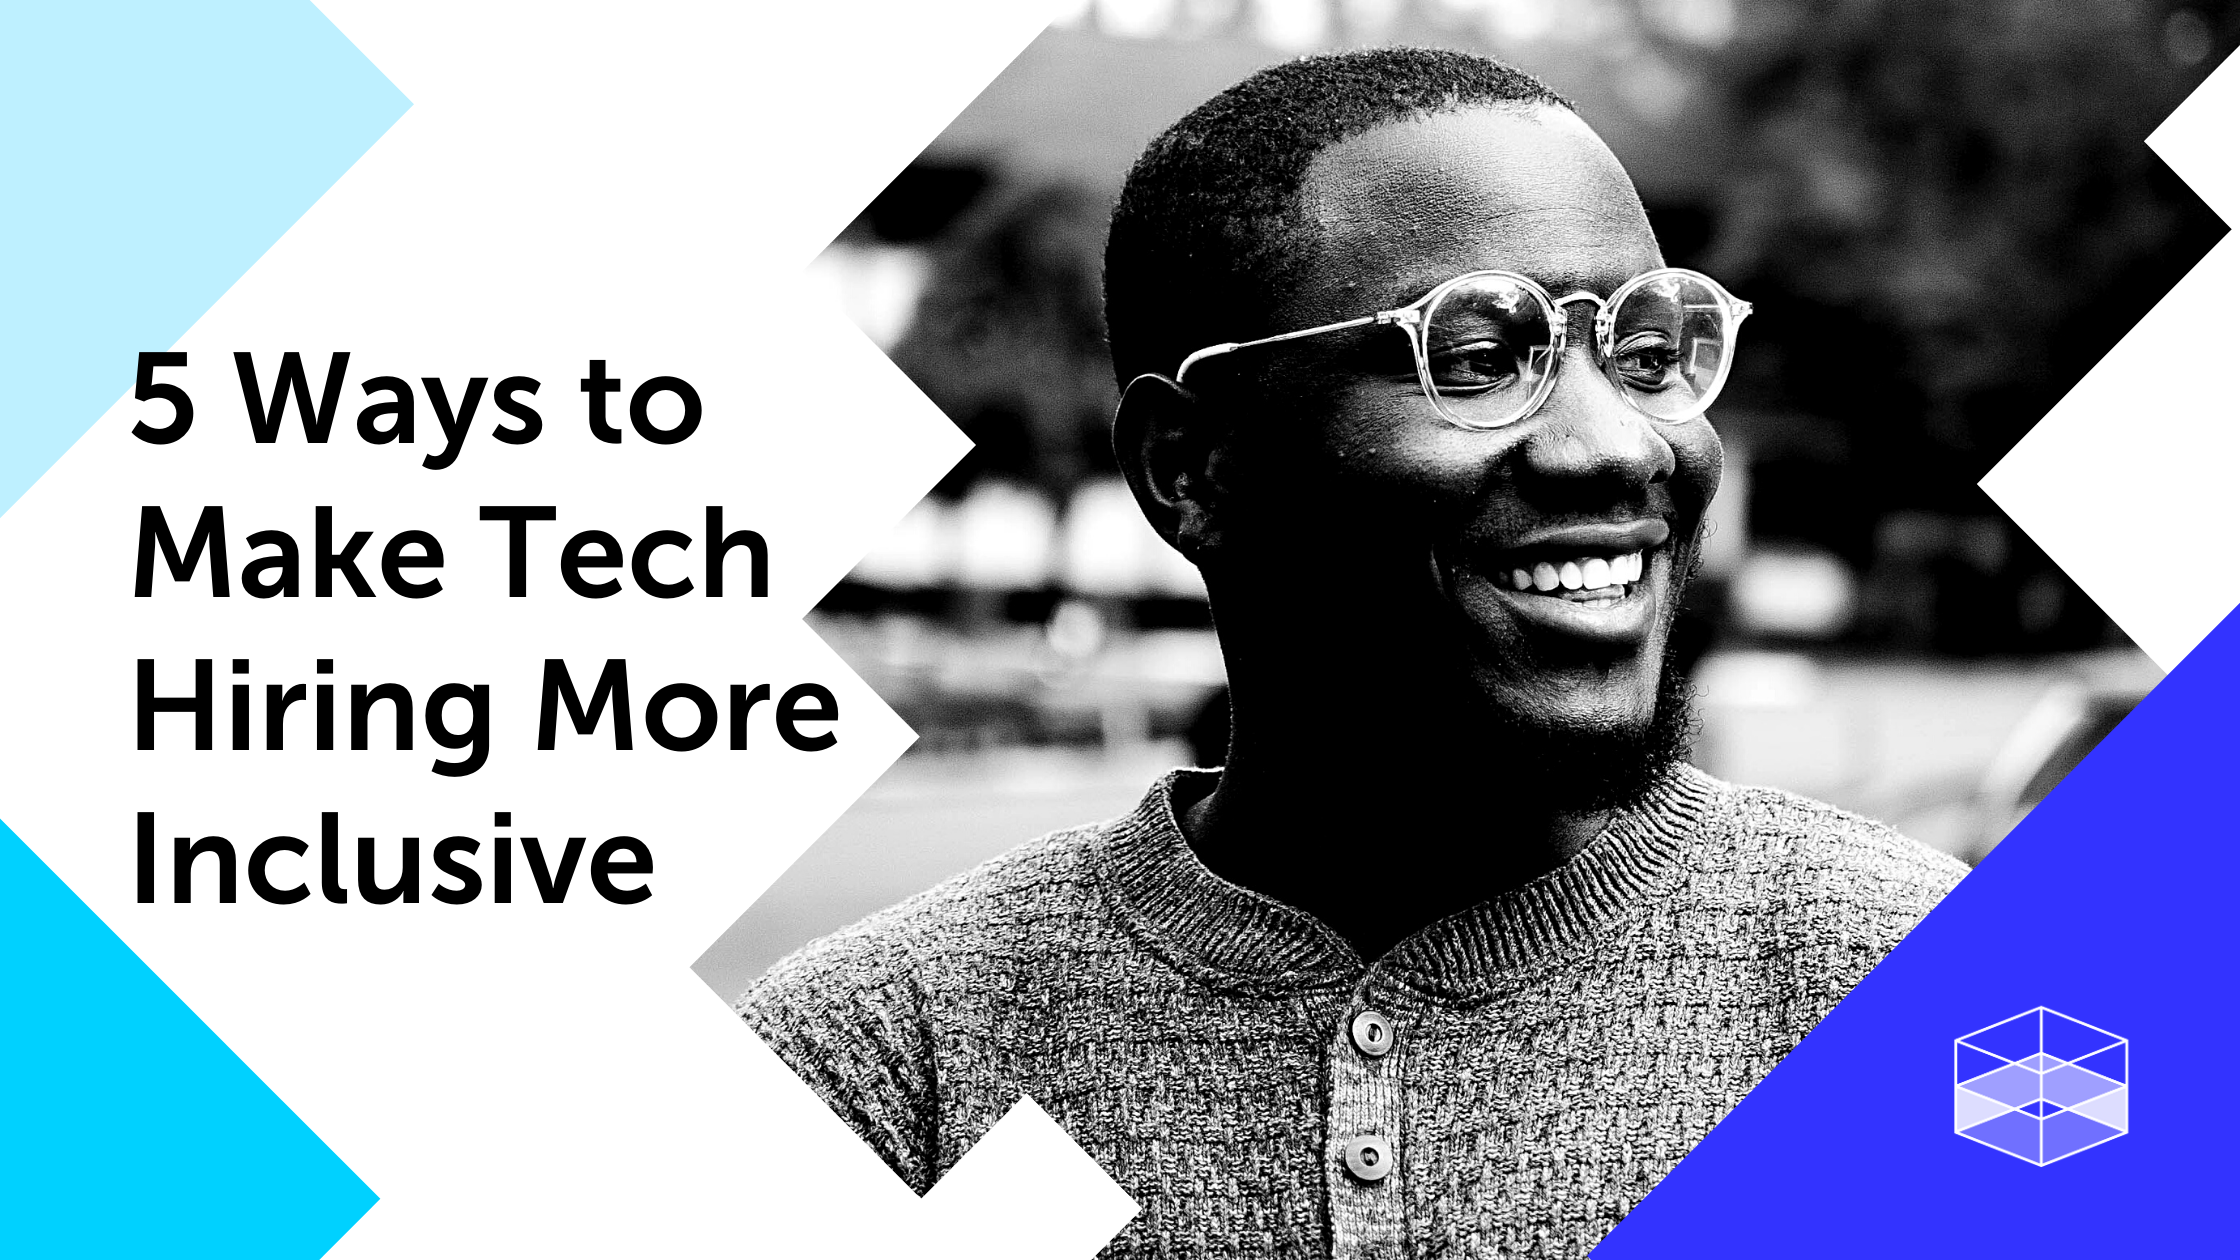 5 Ways to Make Tech Hiring More Inclusive Header with Photo of Man